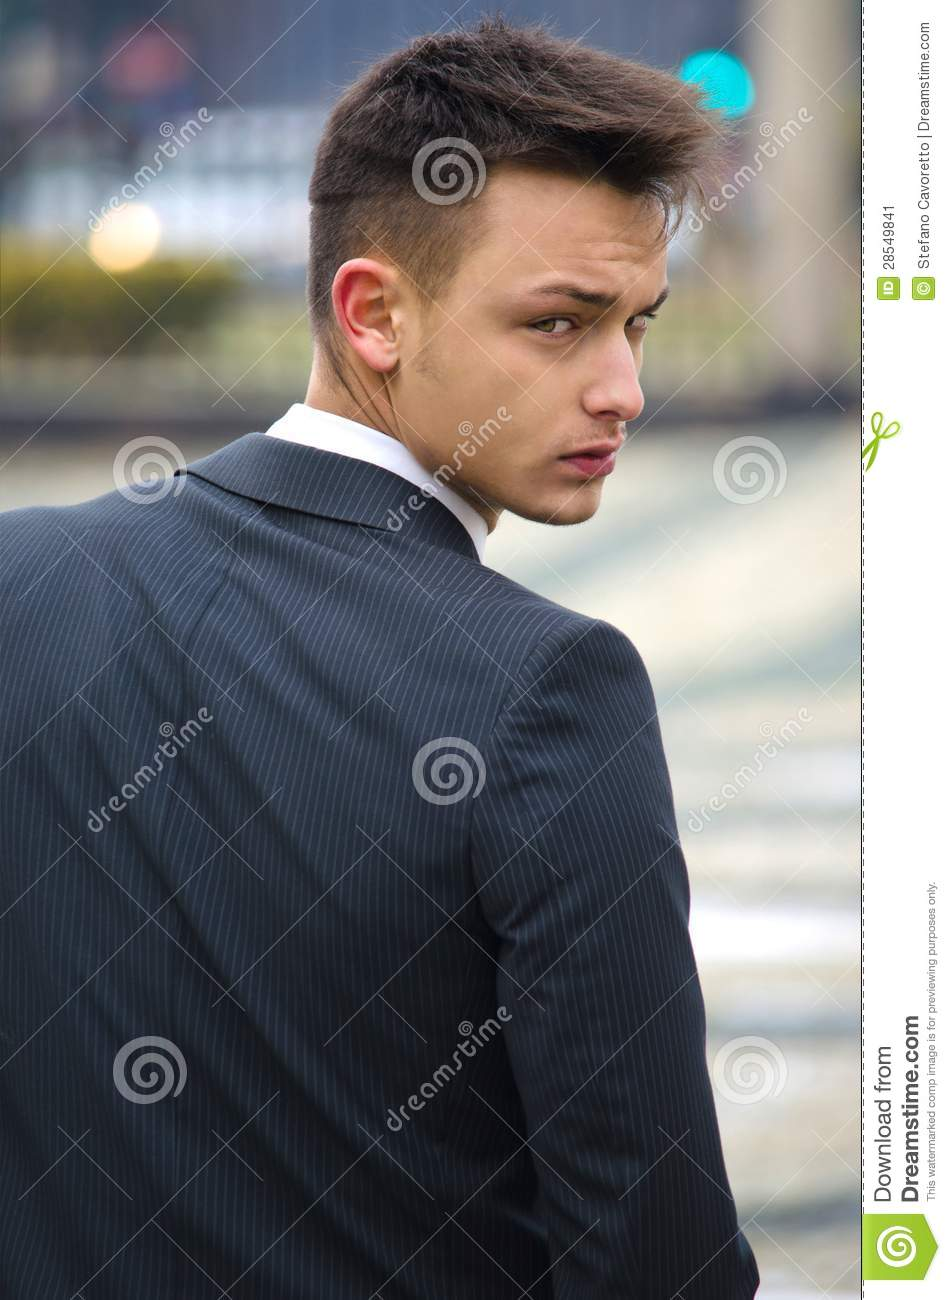 Good Looking Young Man In Suit, Back View Stock Image ...  Good Looking Young Man